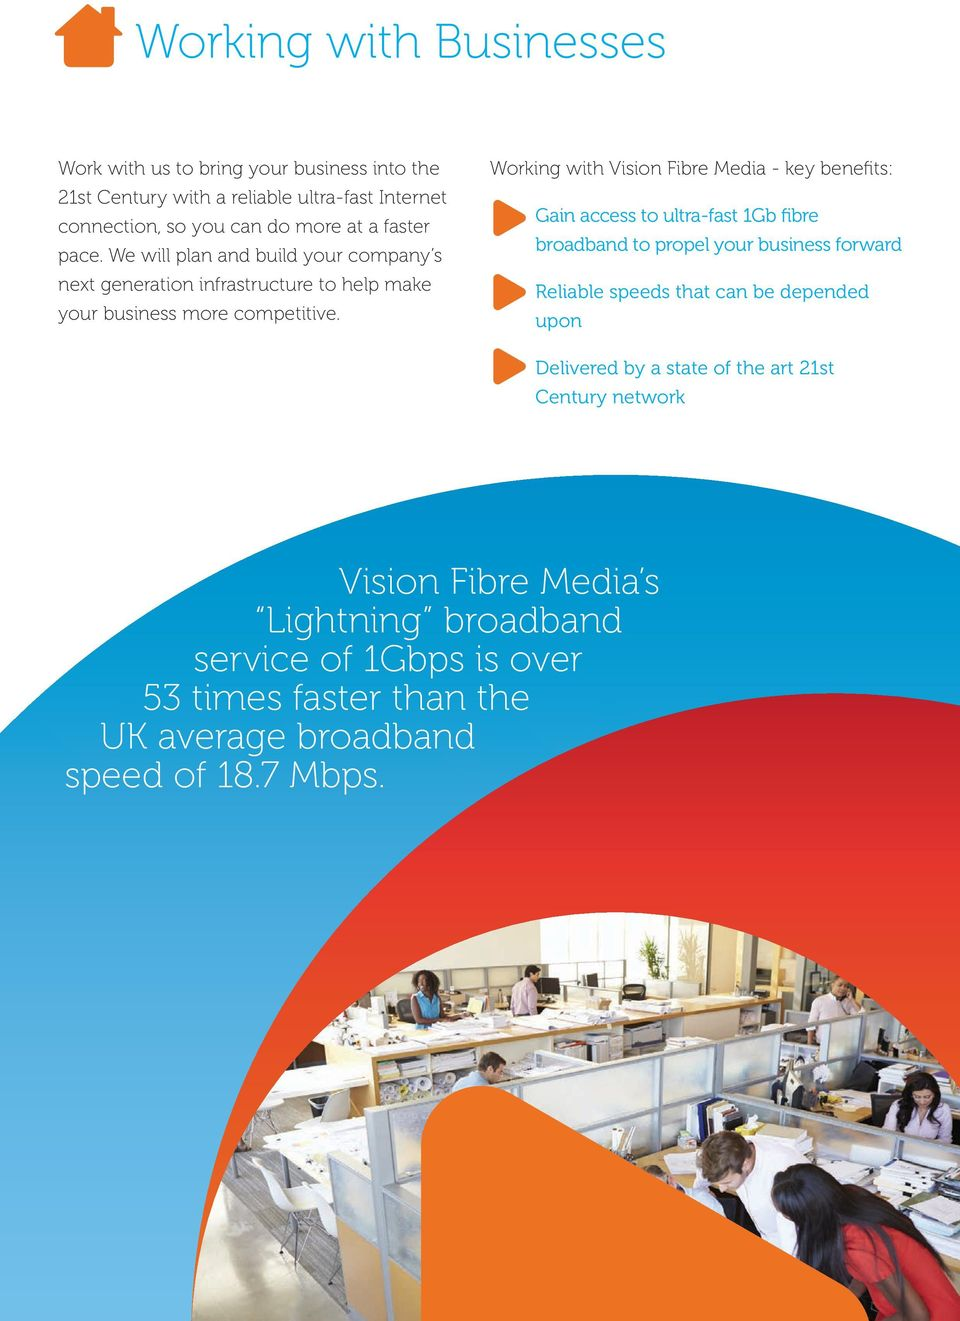 Working with Vision Fibre Media - key benefits: Gain access to ultra-fast 1Gb fibre broadband to propel your business forward Reliable speeds that can be